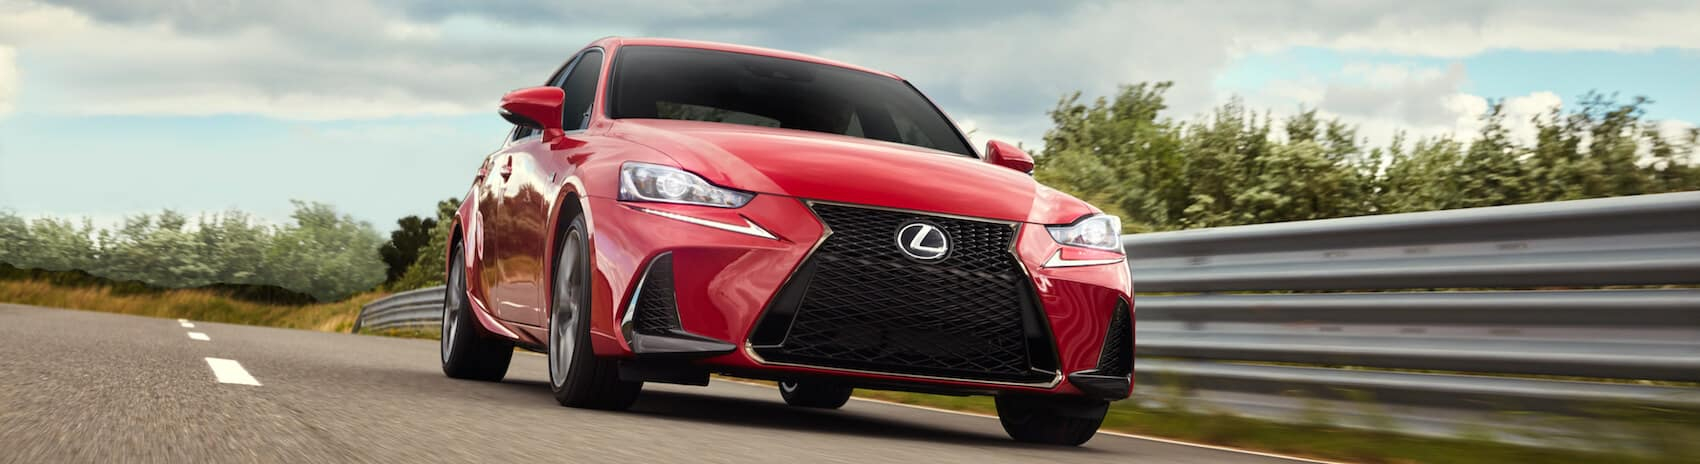 Used Lexus IS for sale near Larchmont, NY